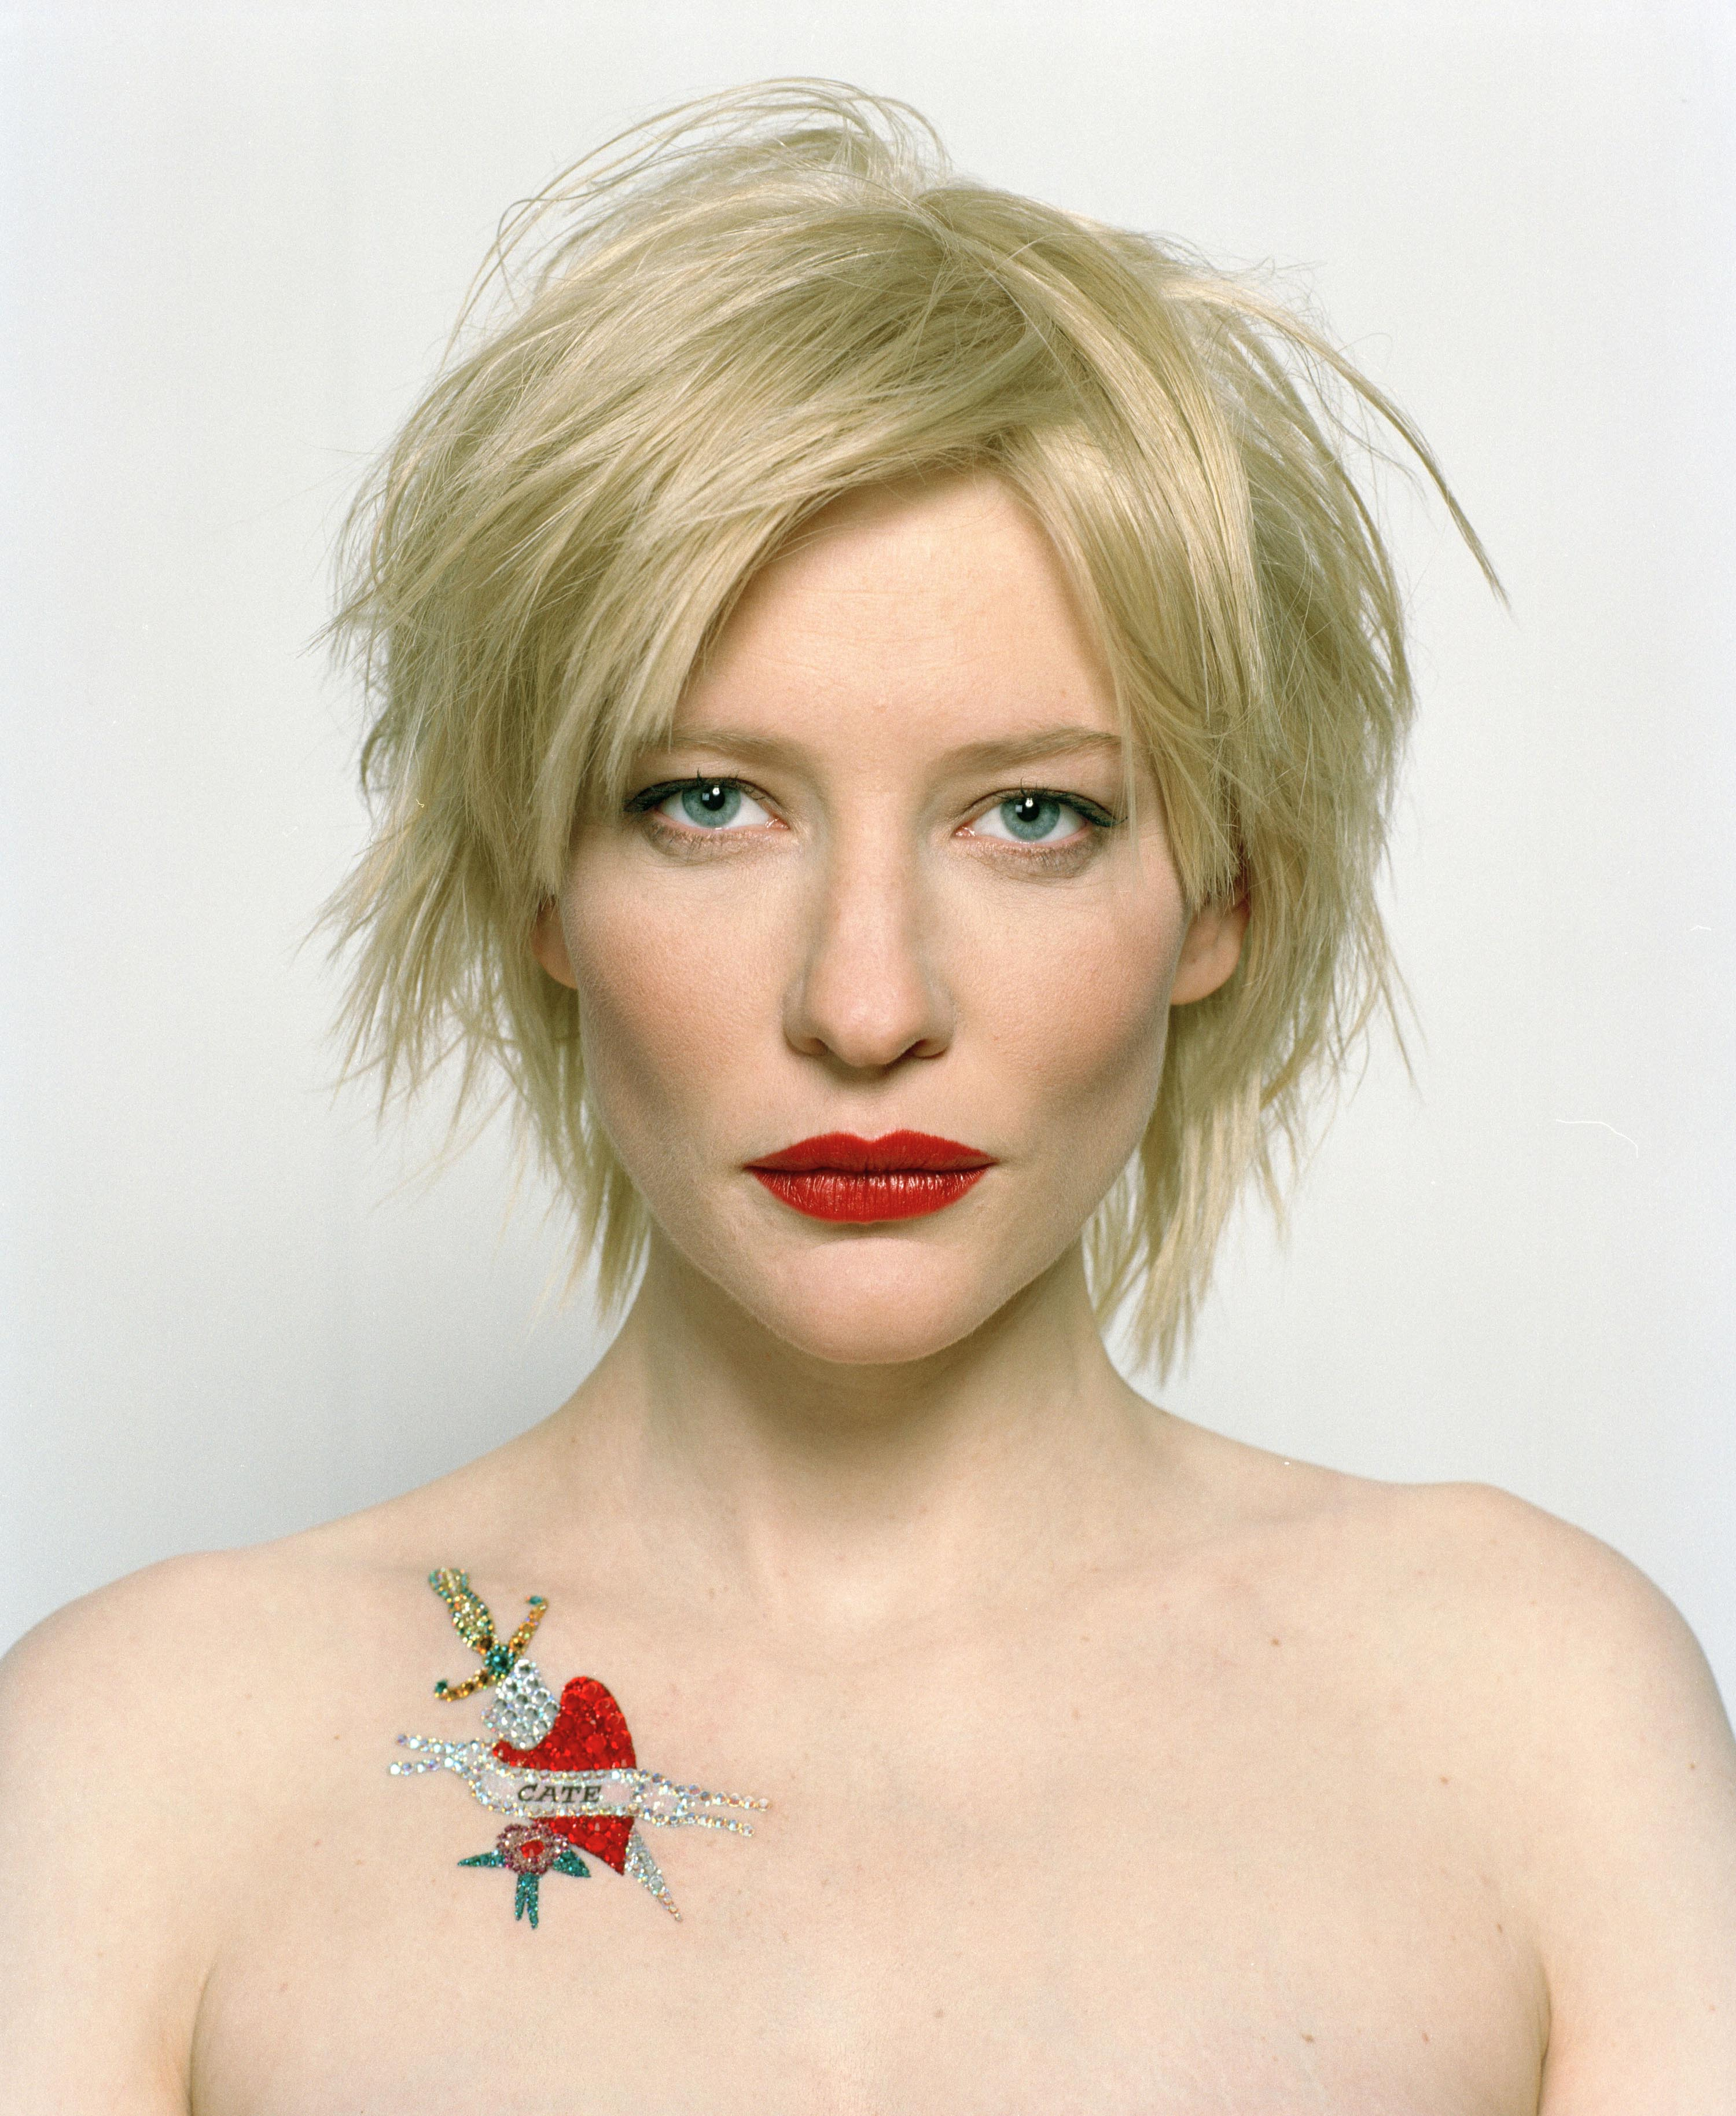 Cate Blanchett photo 7... Cate Blanchett